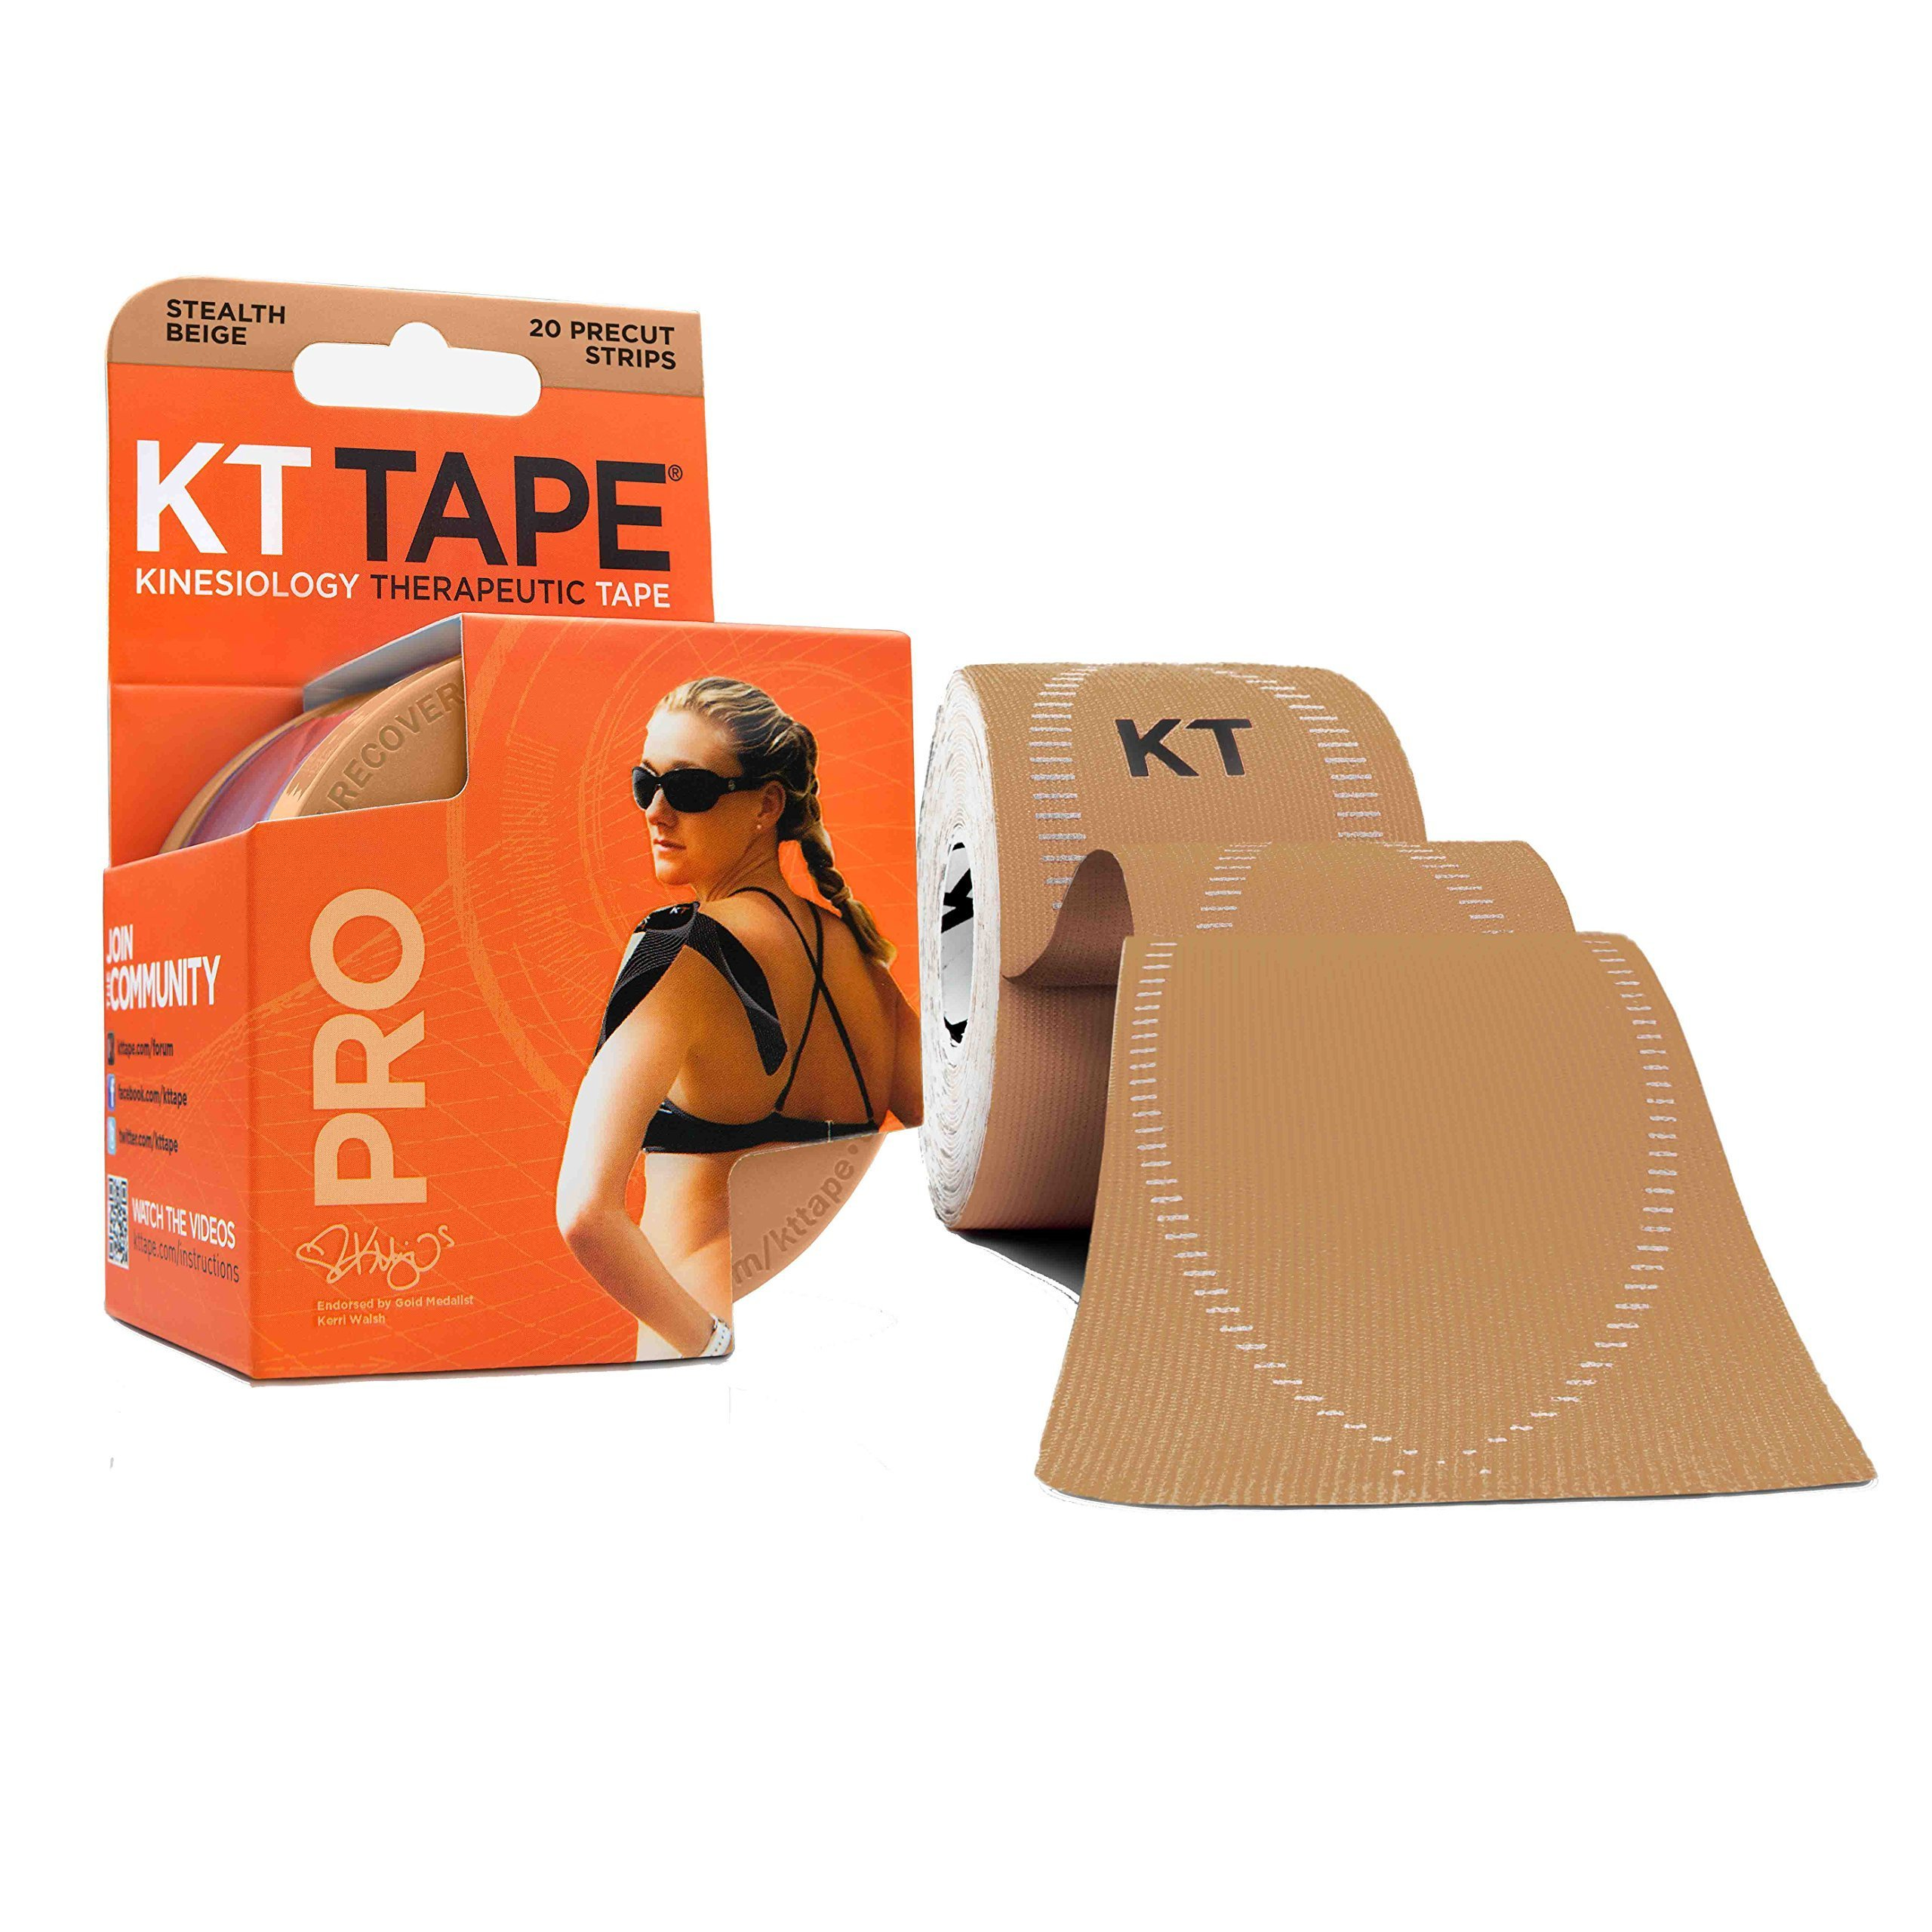 KT Tape Pro Kinesiology Therapeutic Sports Tape, 20 Precut 10 inch Strips, Stealth Beige, Latex Free, Water Resistance, Pro & Olympic Choice